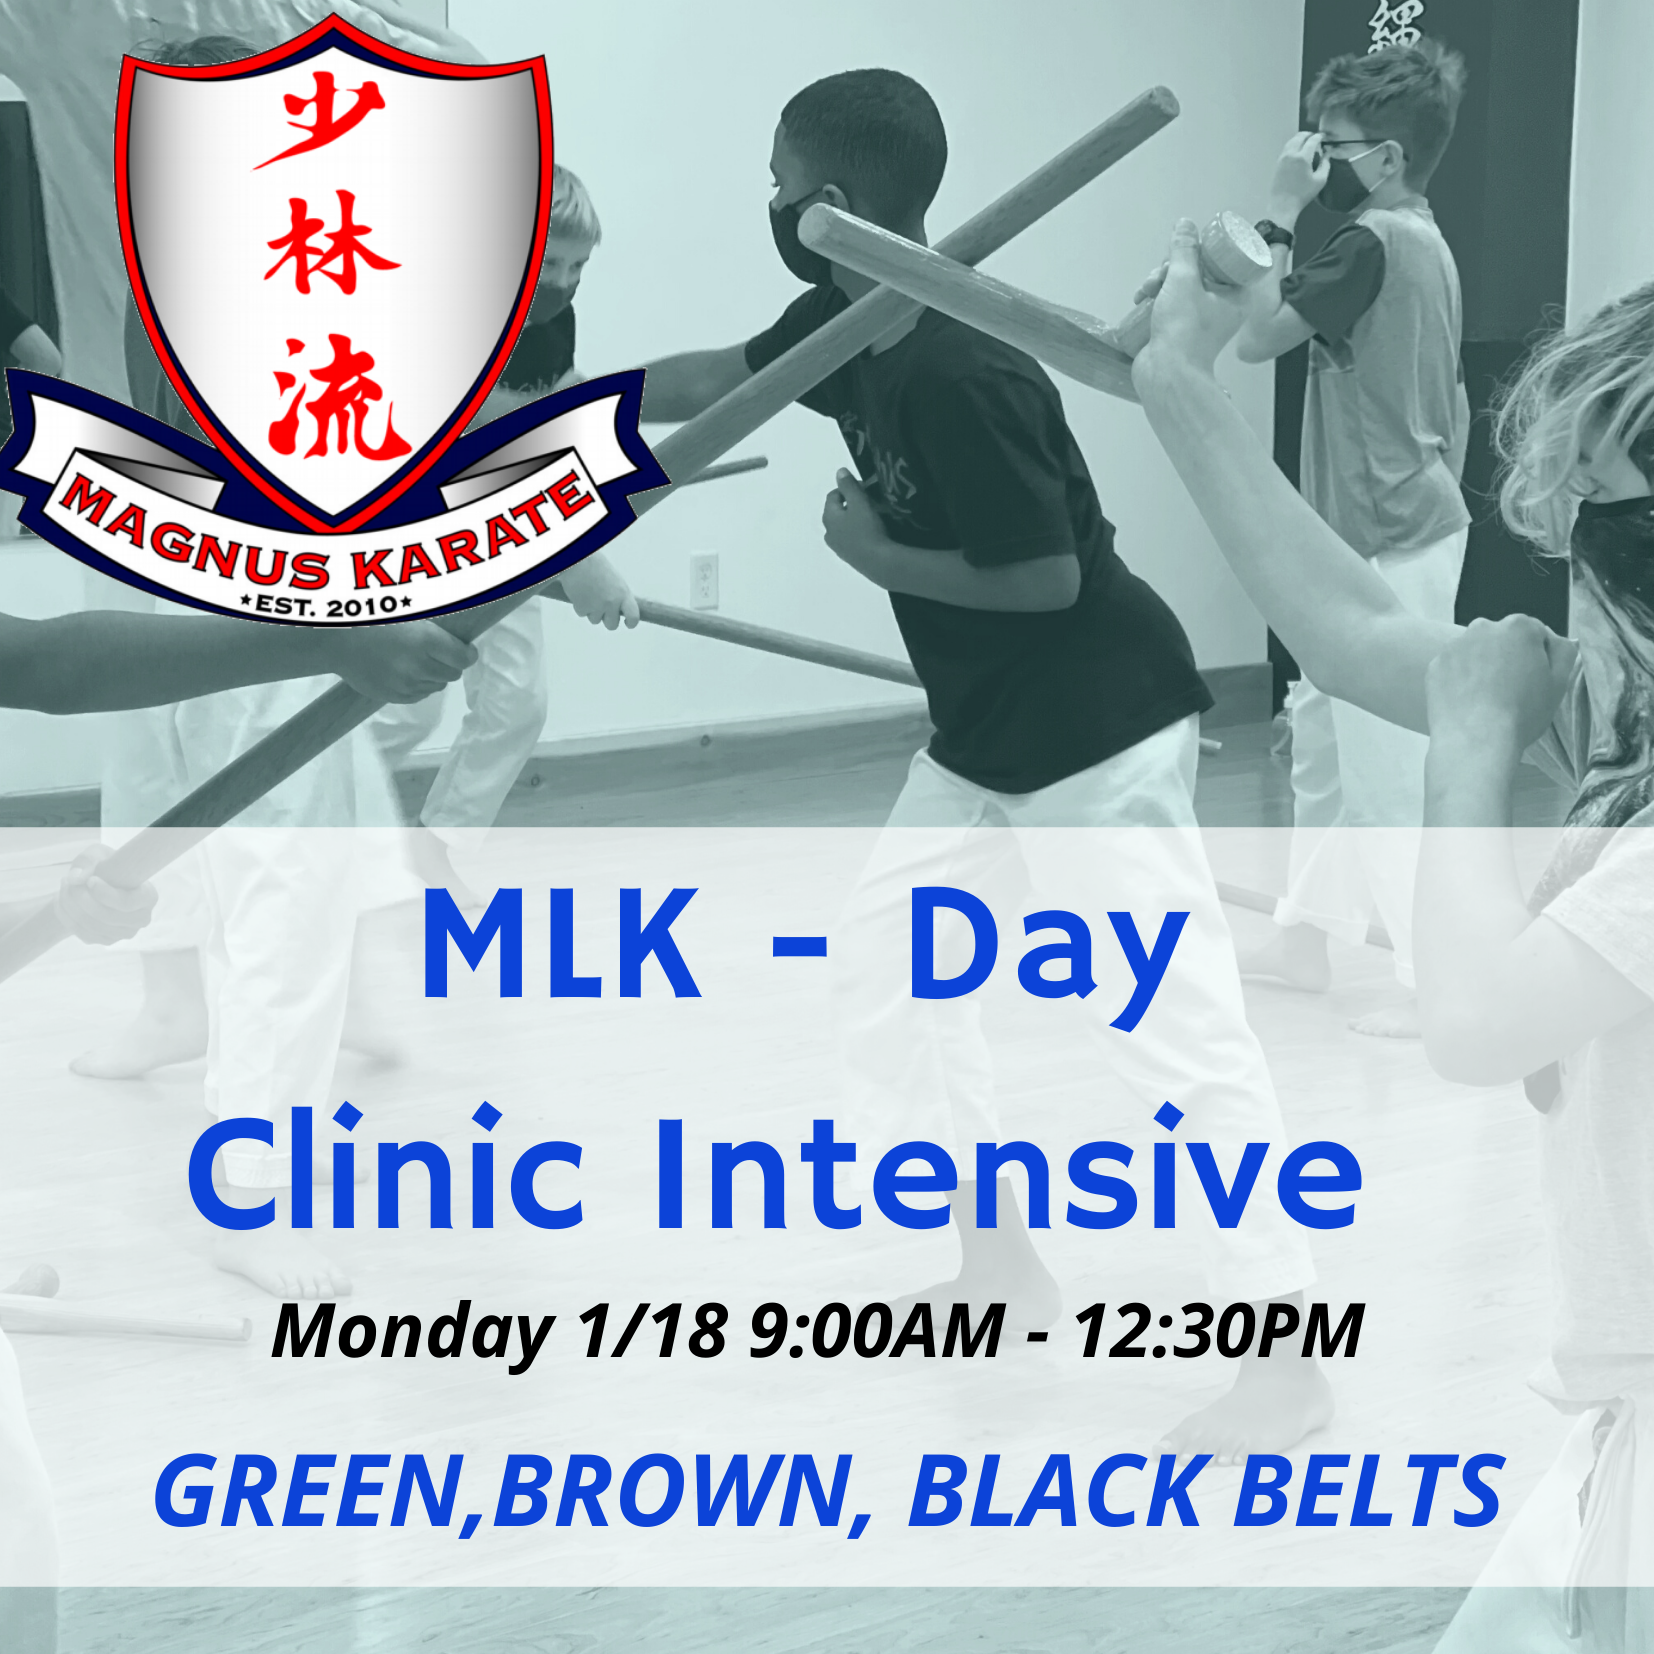 MLK DAY Clinic